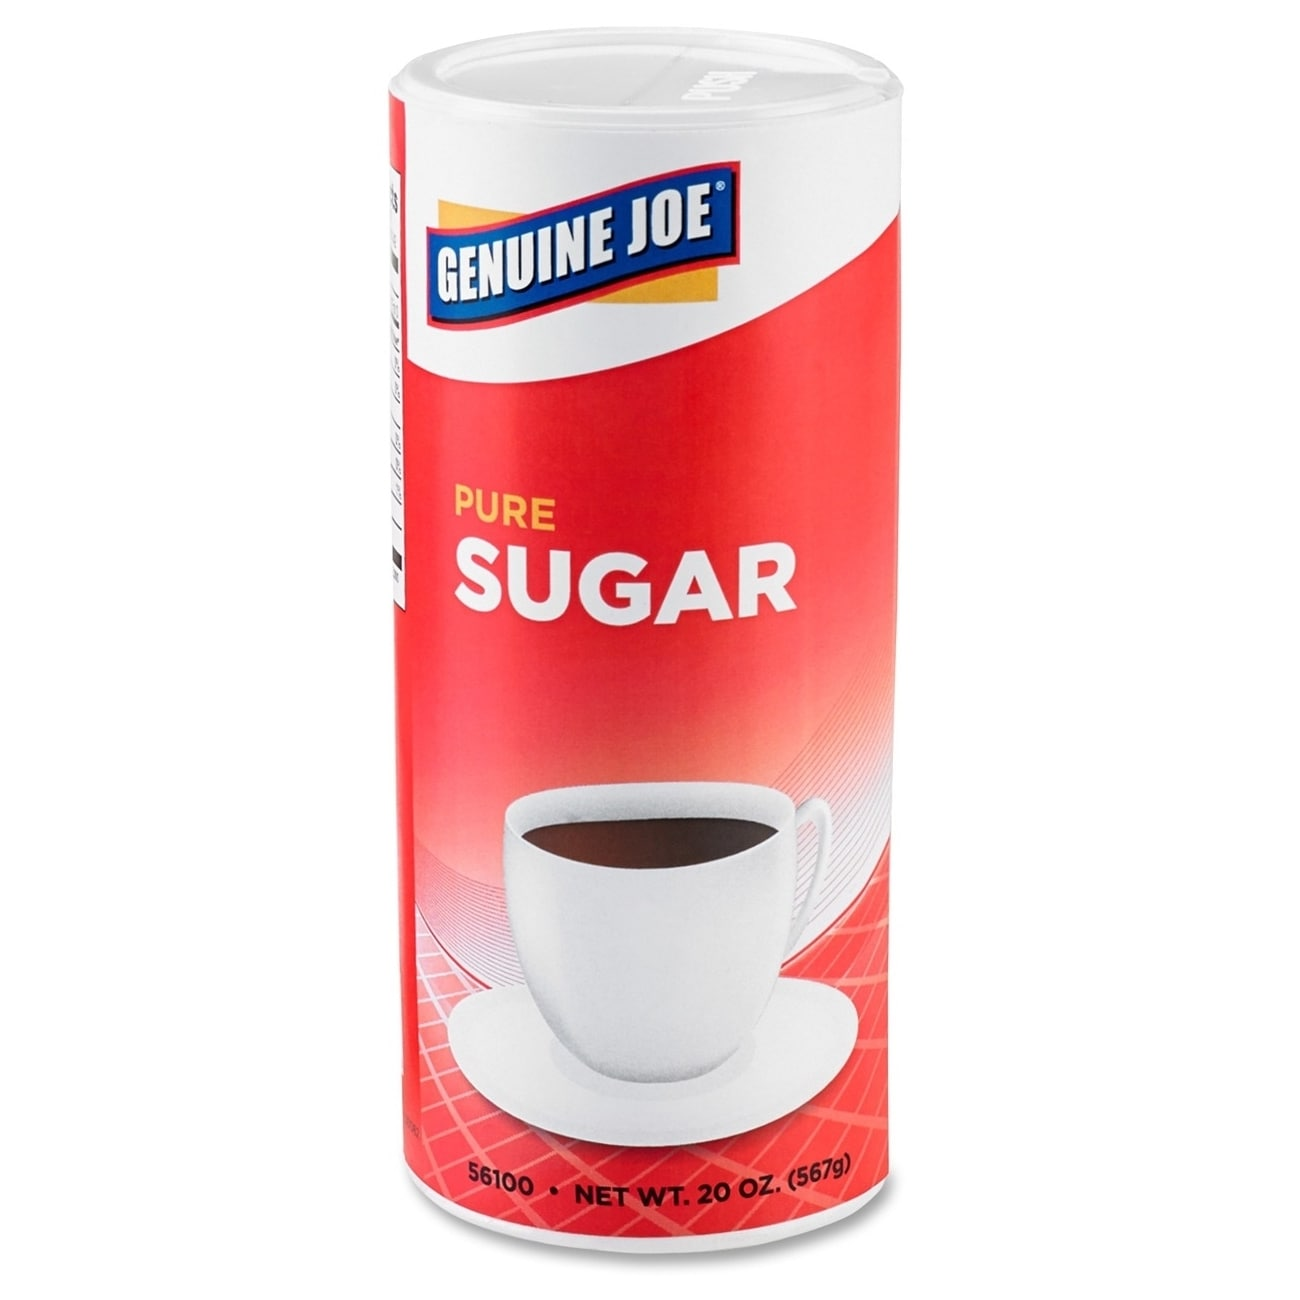 Genuine Joe Pure Cane Sugar Canister (Pack of 3) (Master)...